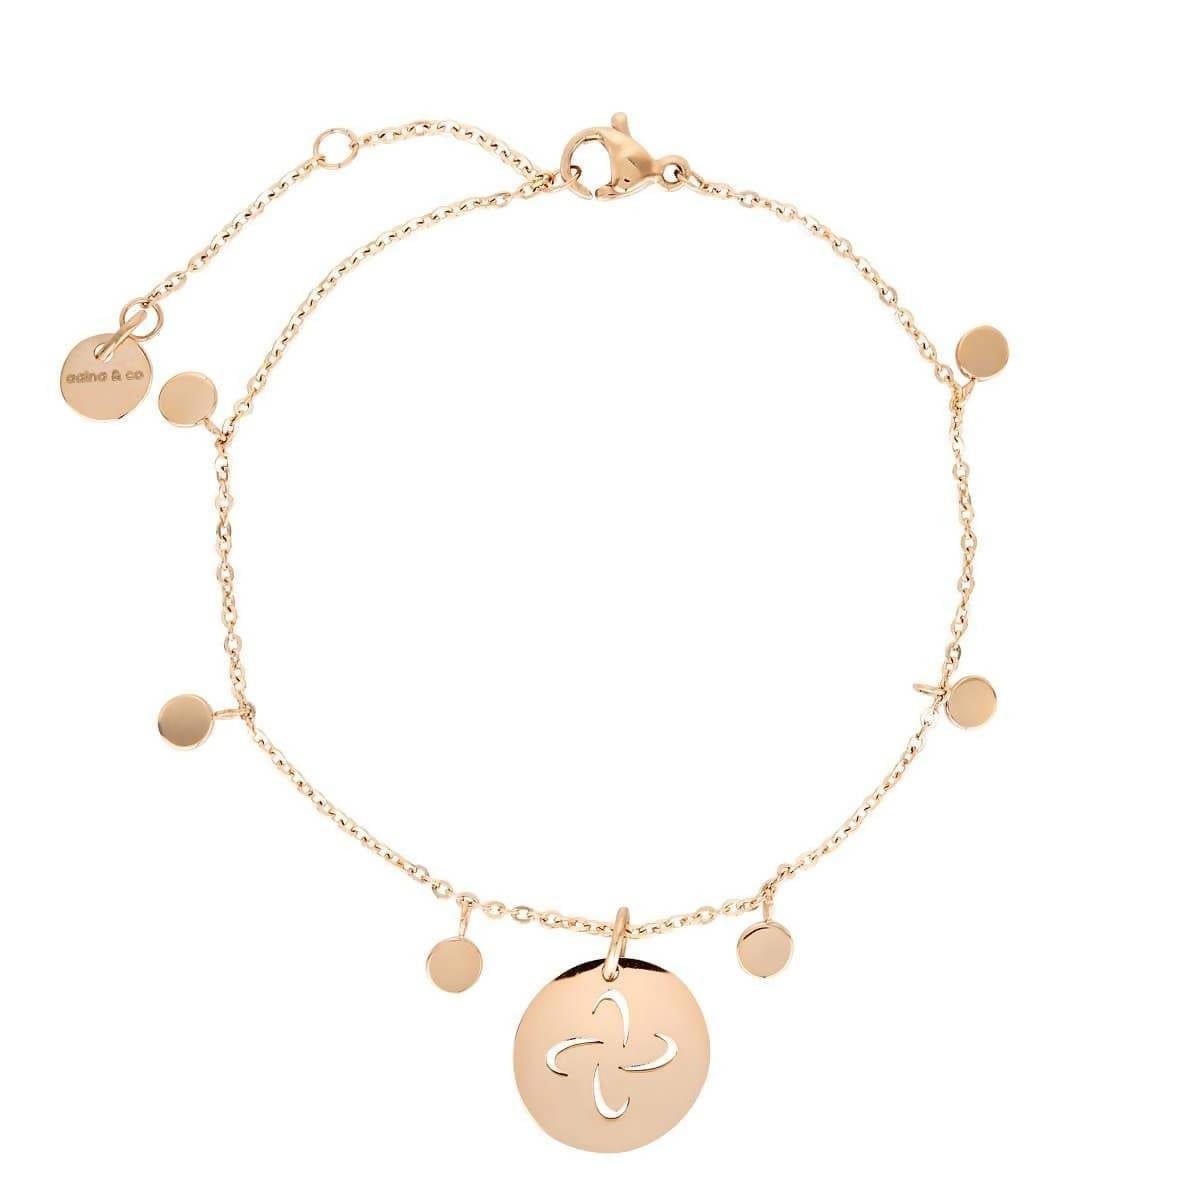 Dainty Bracelet with playful discs and Tabono Symbol Charm